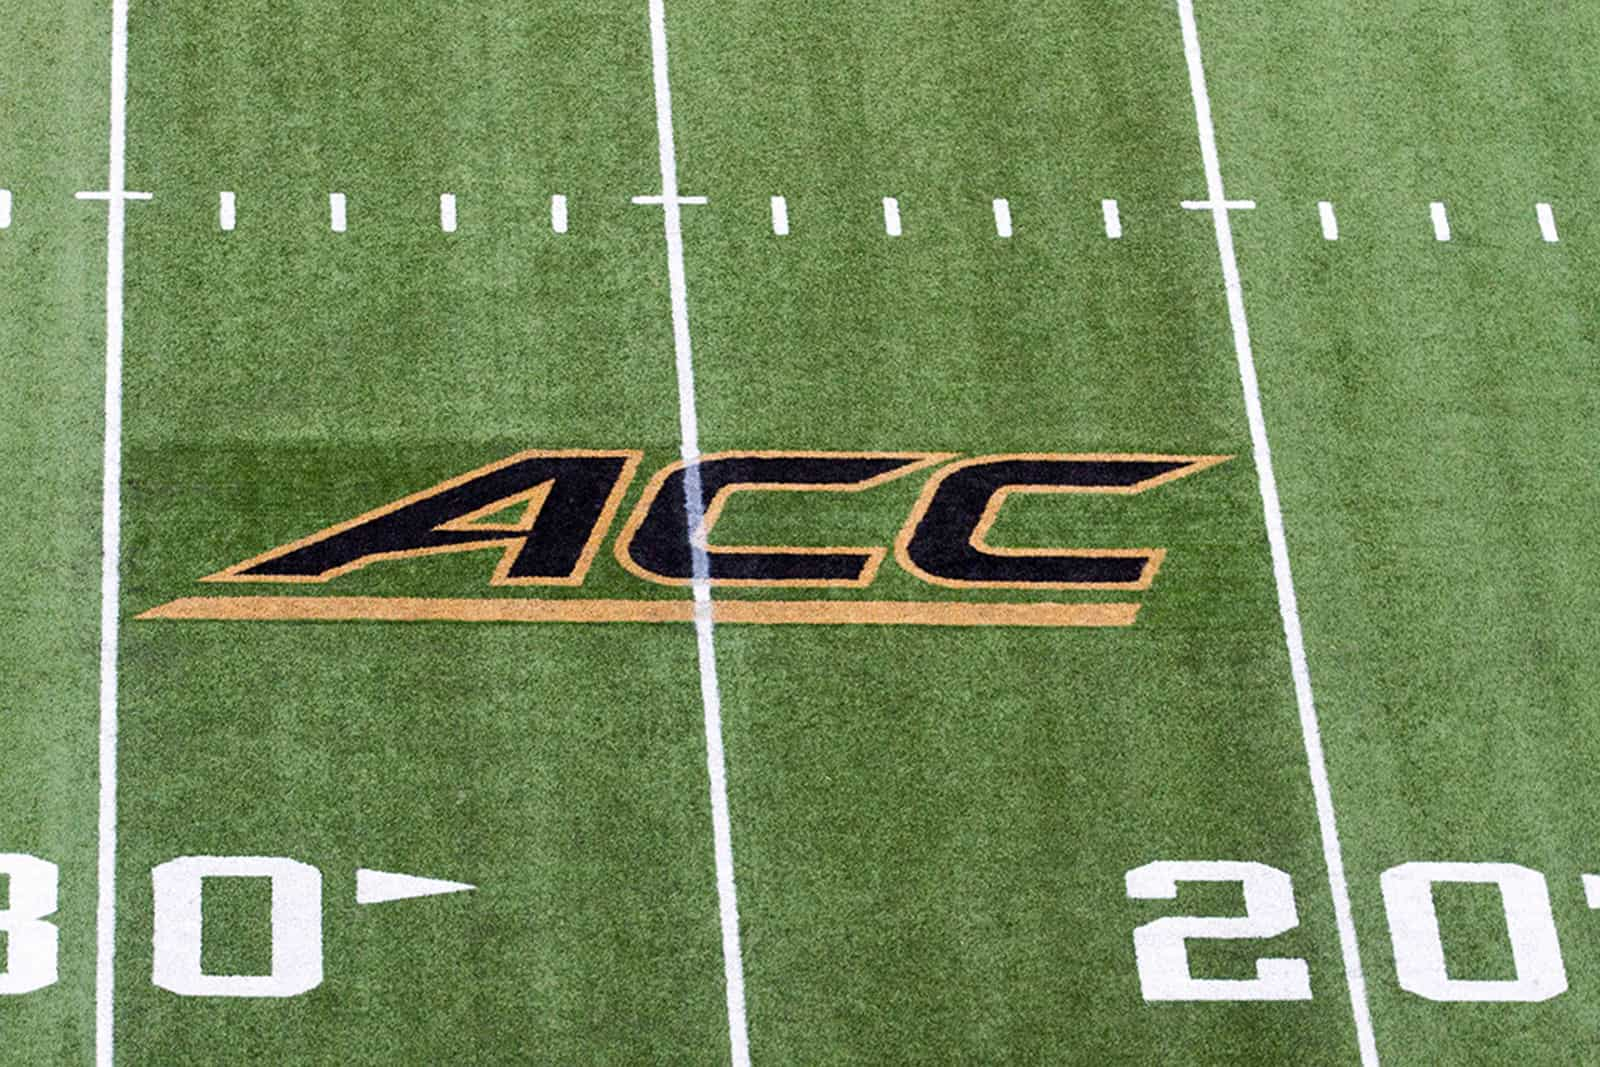 ACC Football | Notre Dame, college football realignment and the power of independence